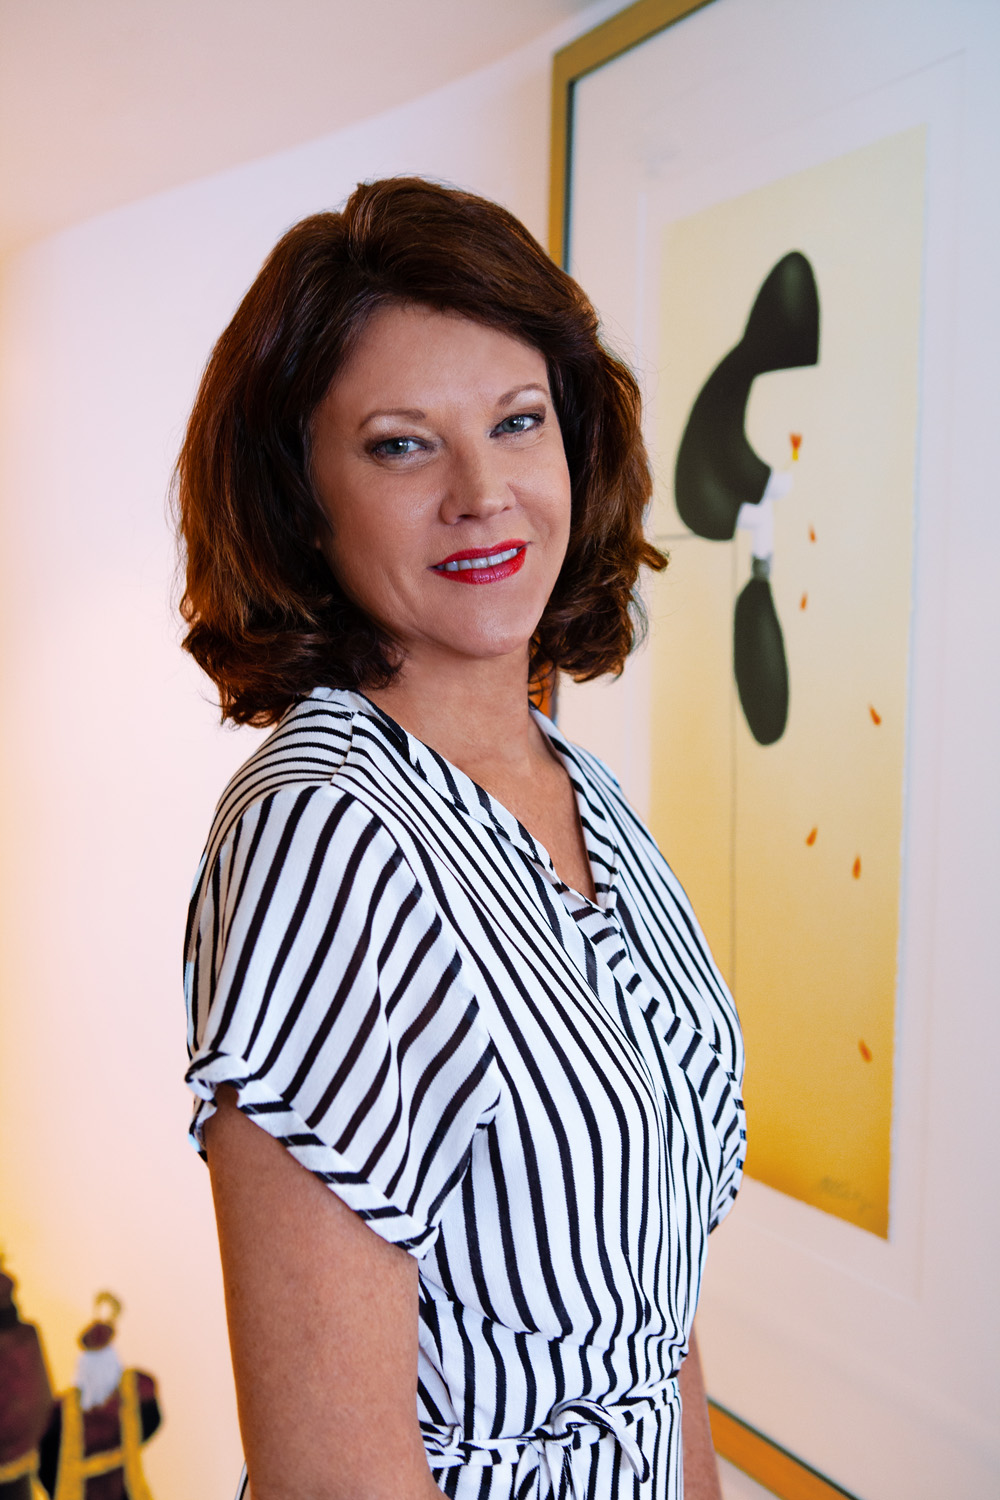 Business woman in a dress, gold coast head shots, gold coast corporate photography, gold coast business photography, gold coast business community, gold coast business woman, gold coast business woman photography, lana noir, @lananoir, gold coast industry professionals, best photographer gold coast, robina photographer, broadbeach photographer